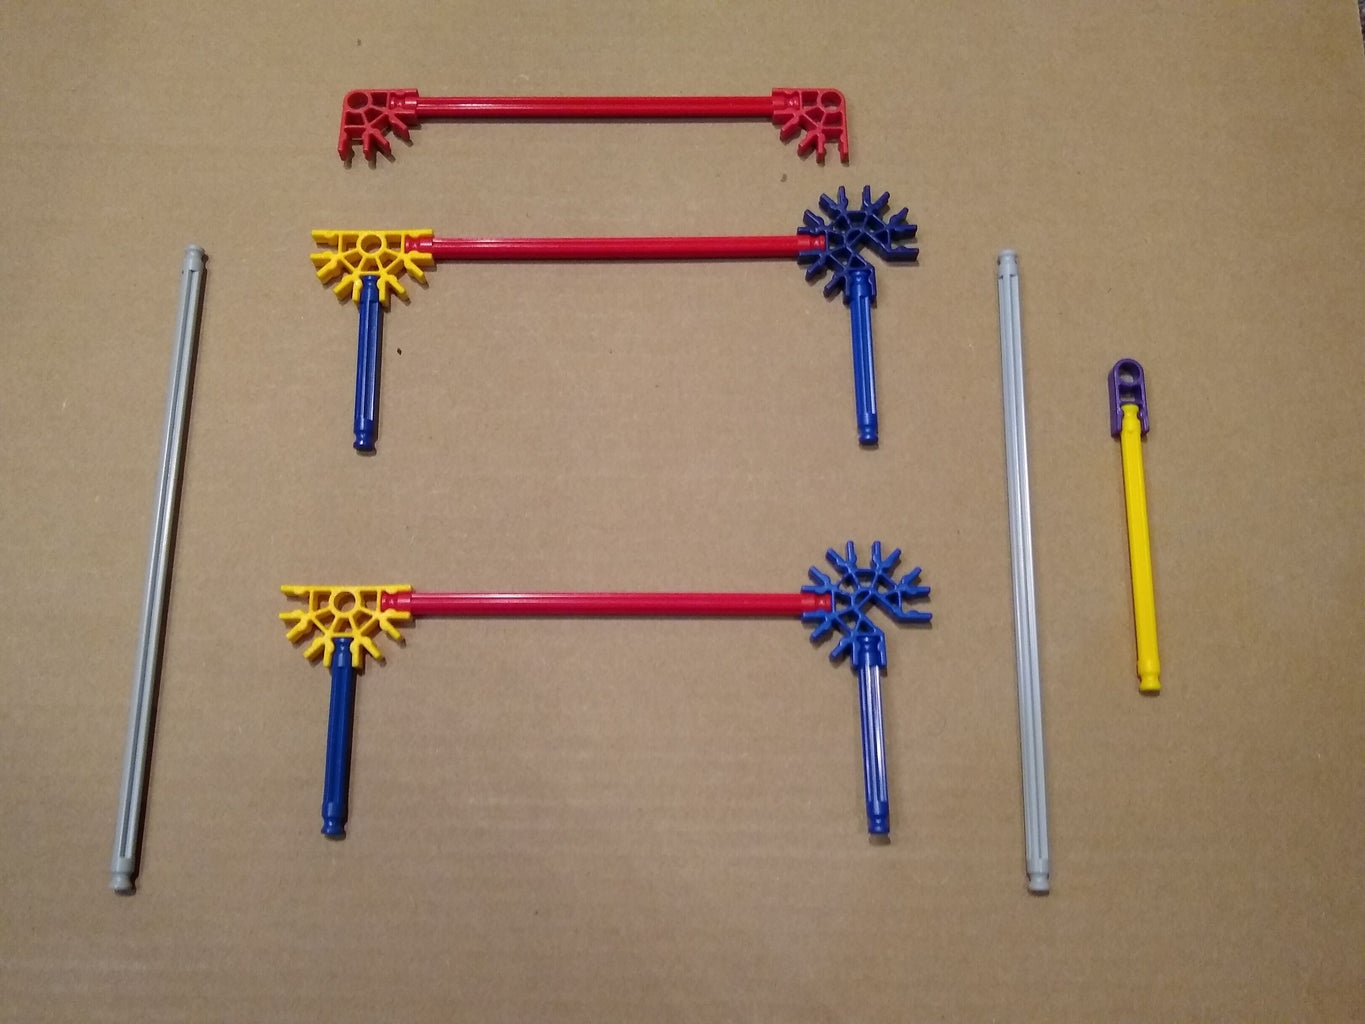 Build the Origami Support Frame